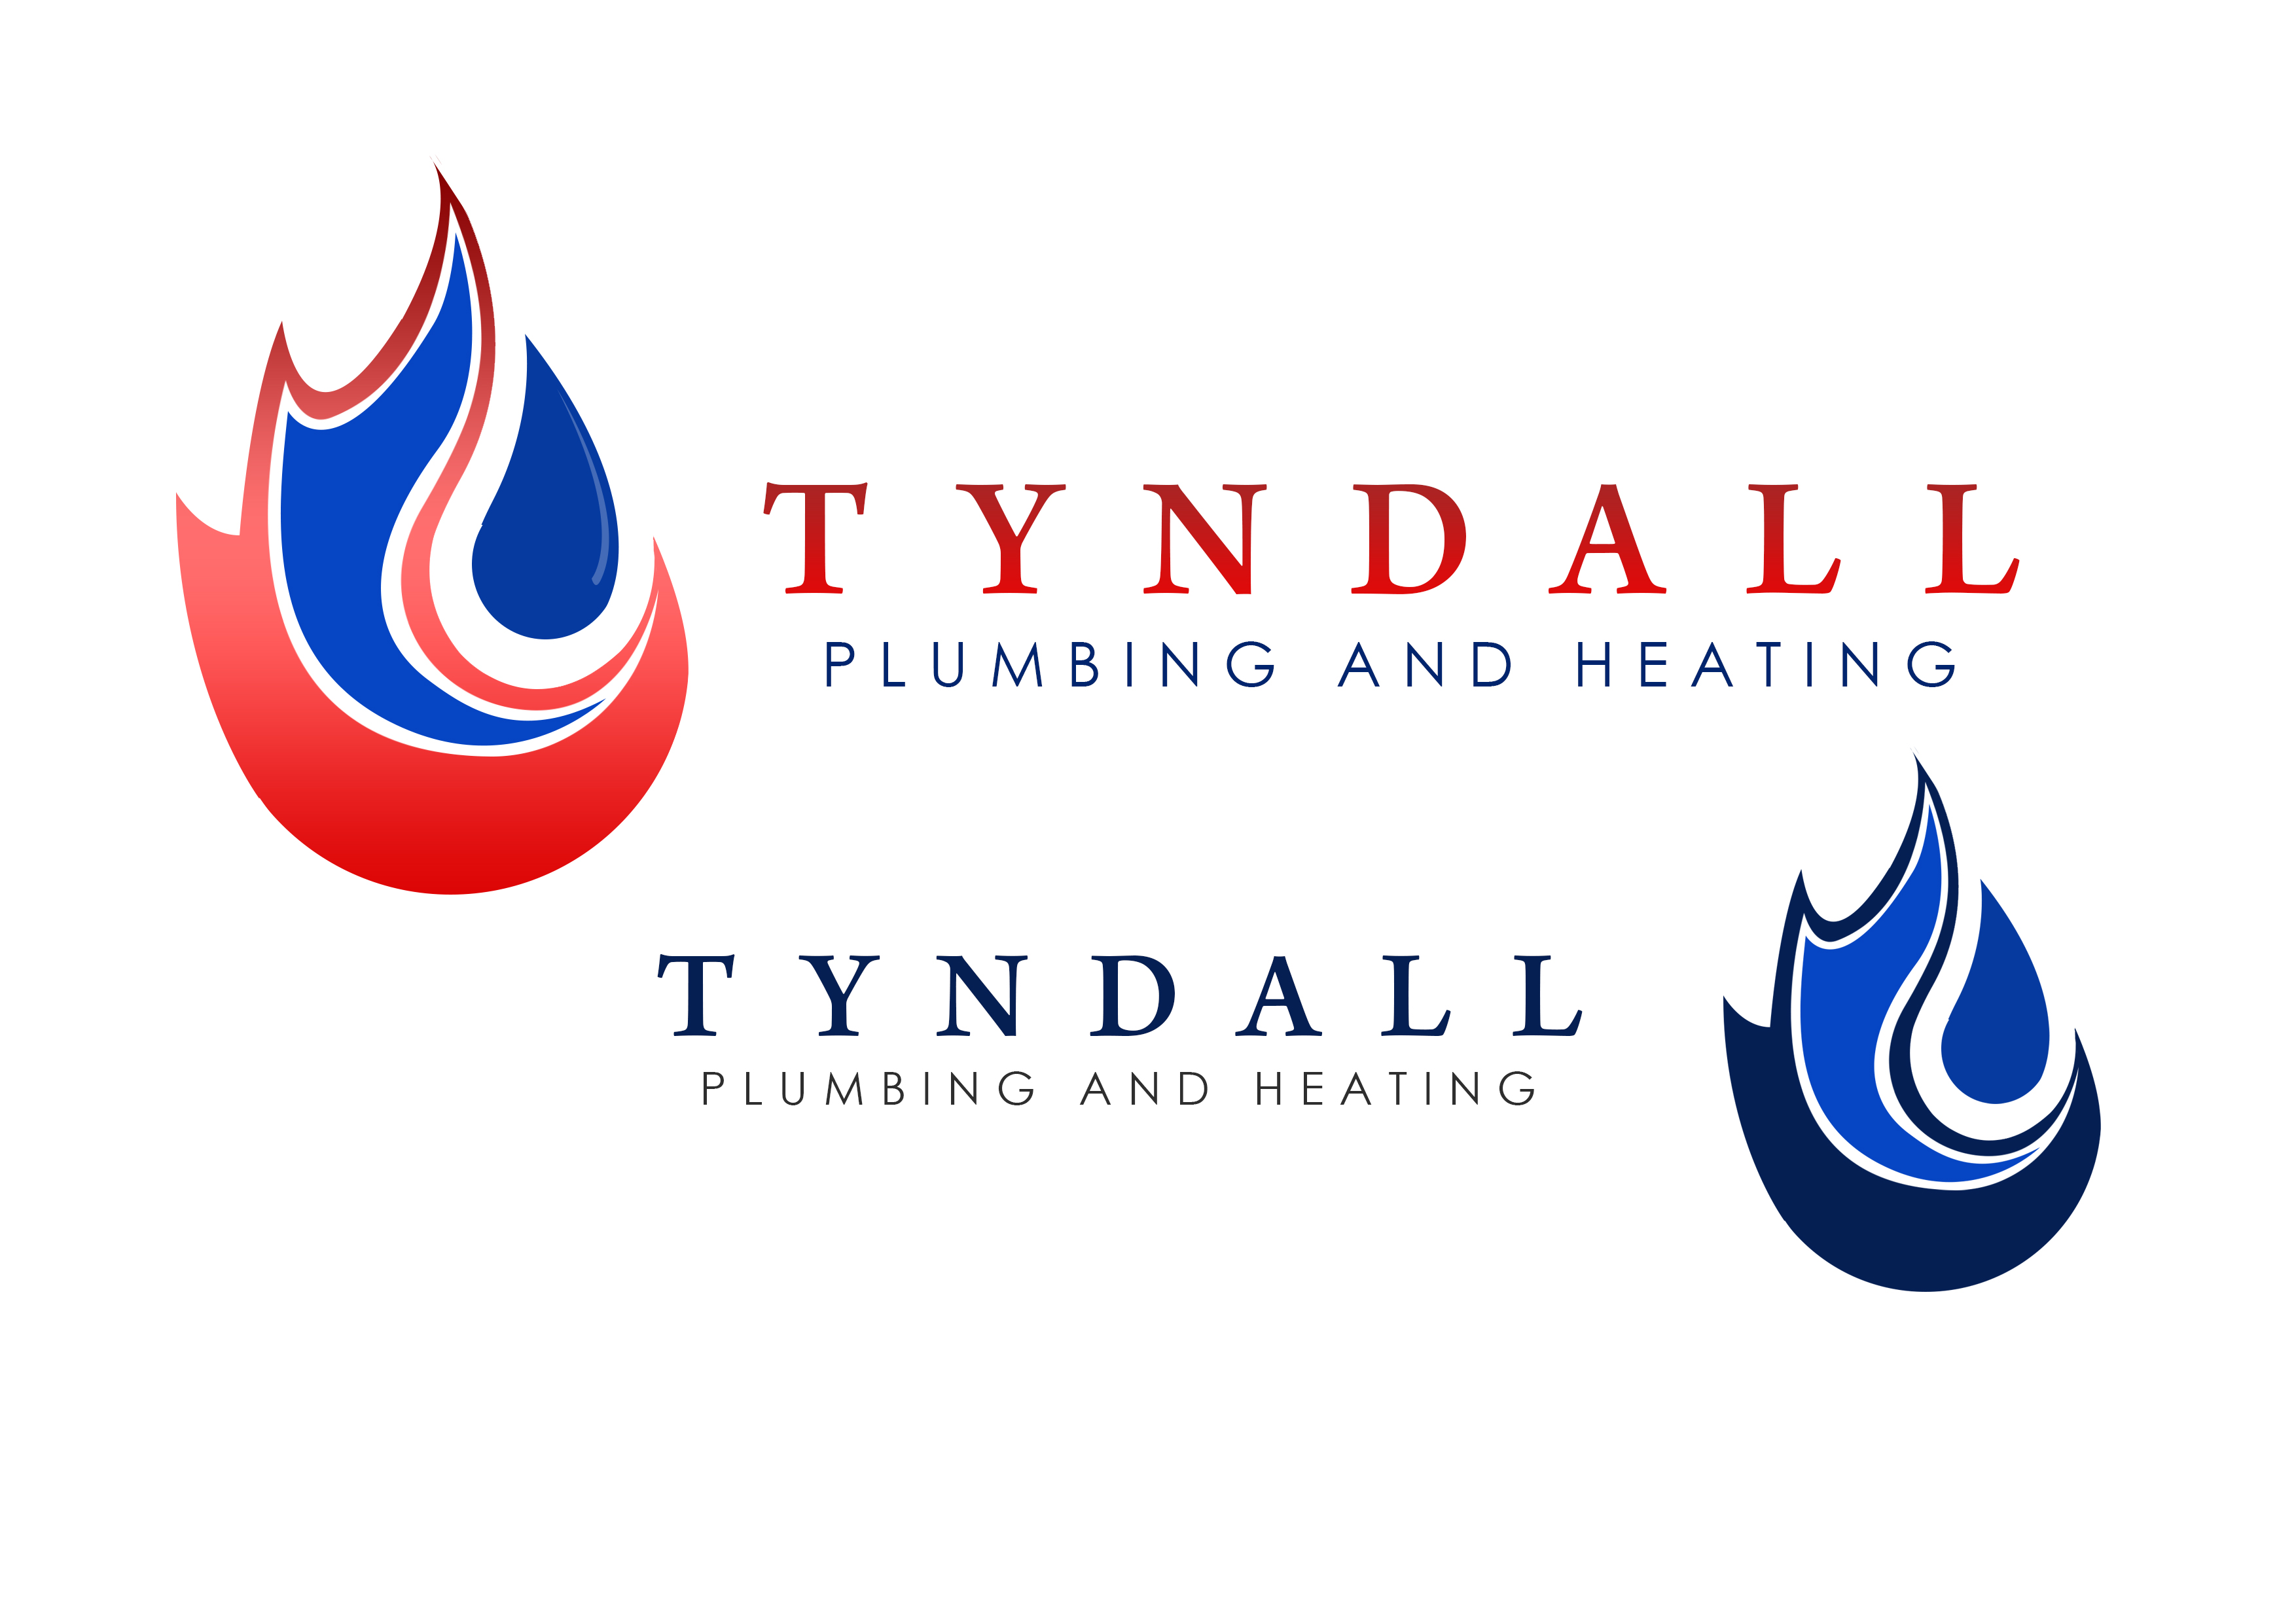 Logo Design by Jesther Jordan Minor - Entry No. 29 in the Logo Design Contest Imaginative Logo Design for Tyndall Plumbing & Heating.